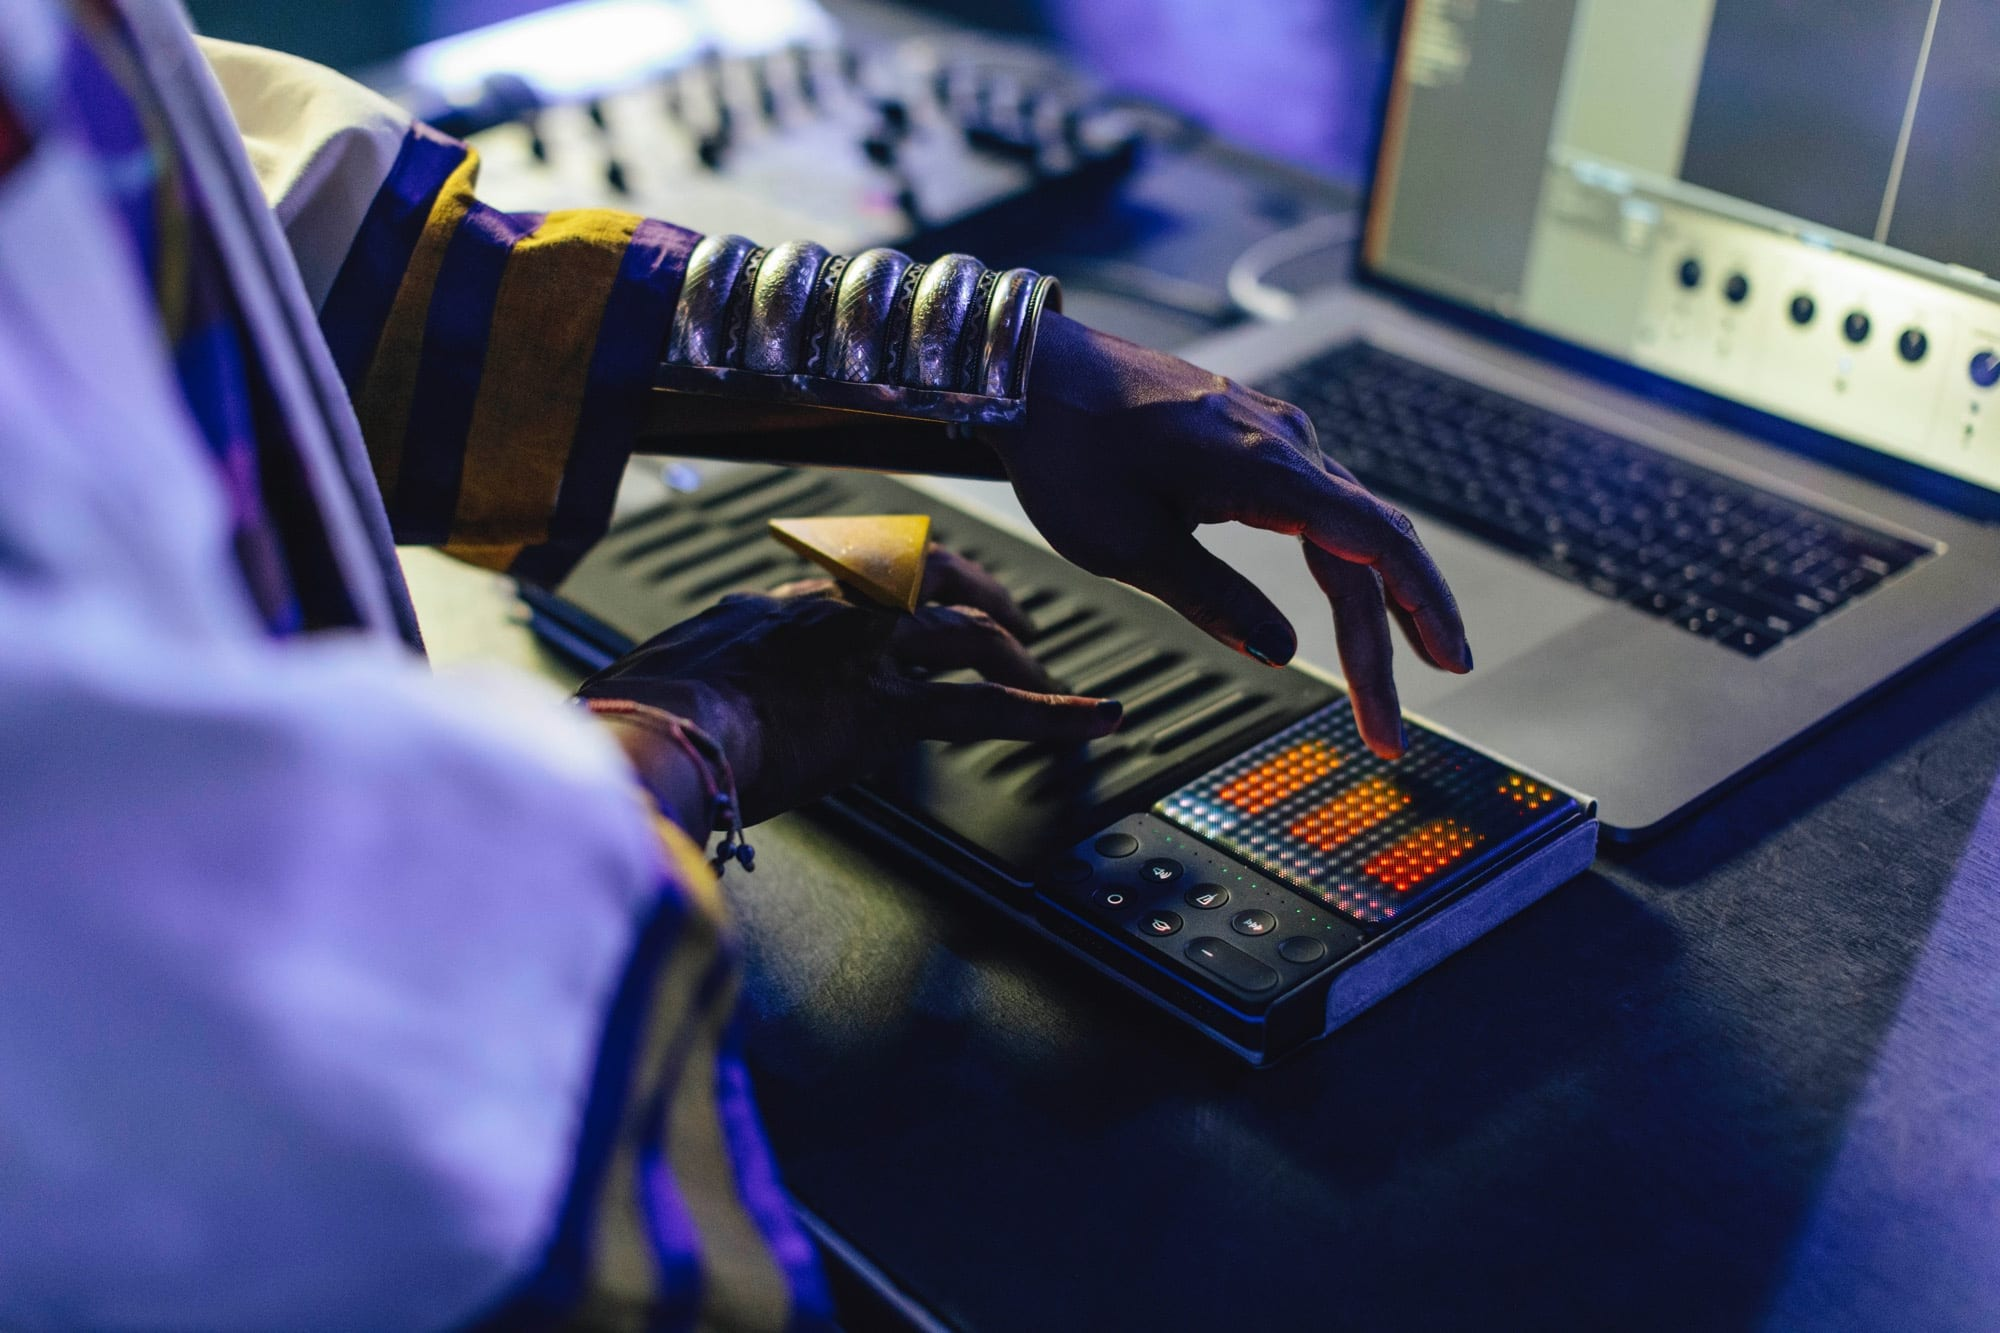 Roli Songmaker Kit Garageband Edition Adds Touch Control To Mac 3 Way Switch Even Aliens Can Enjoy